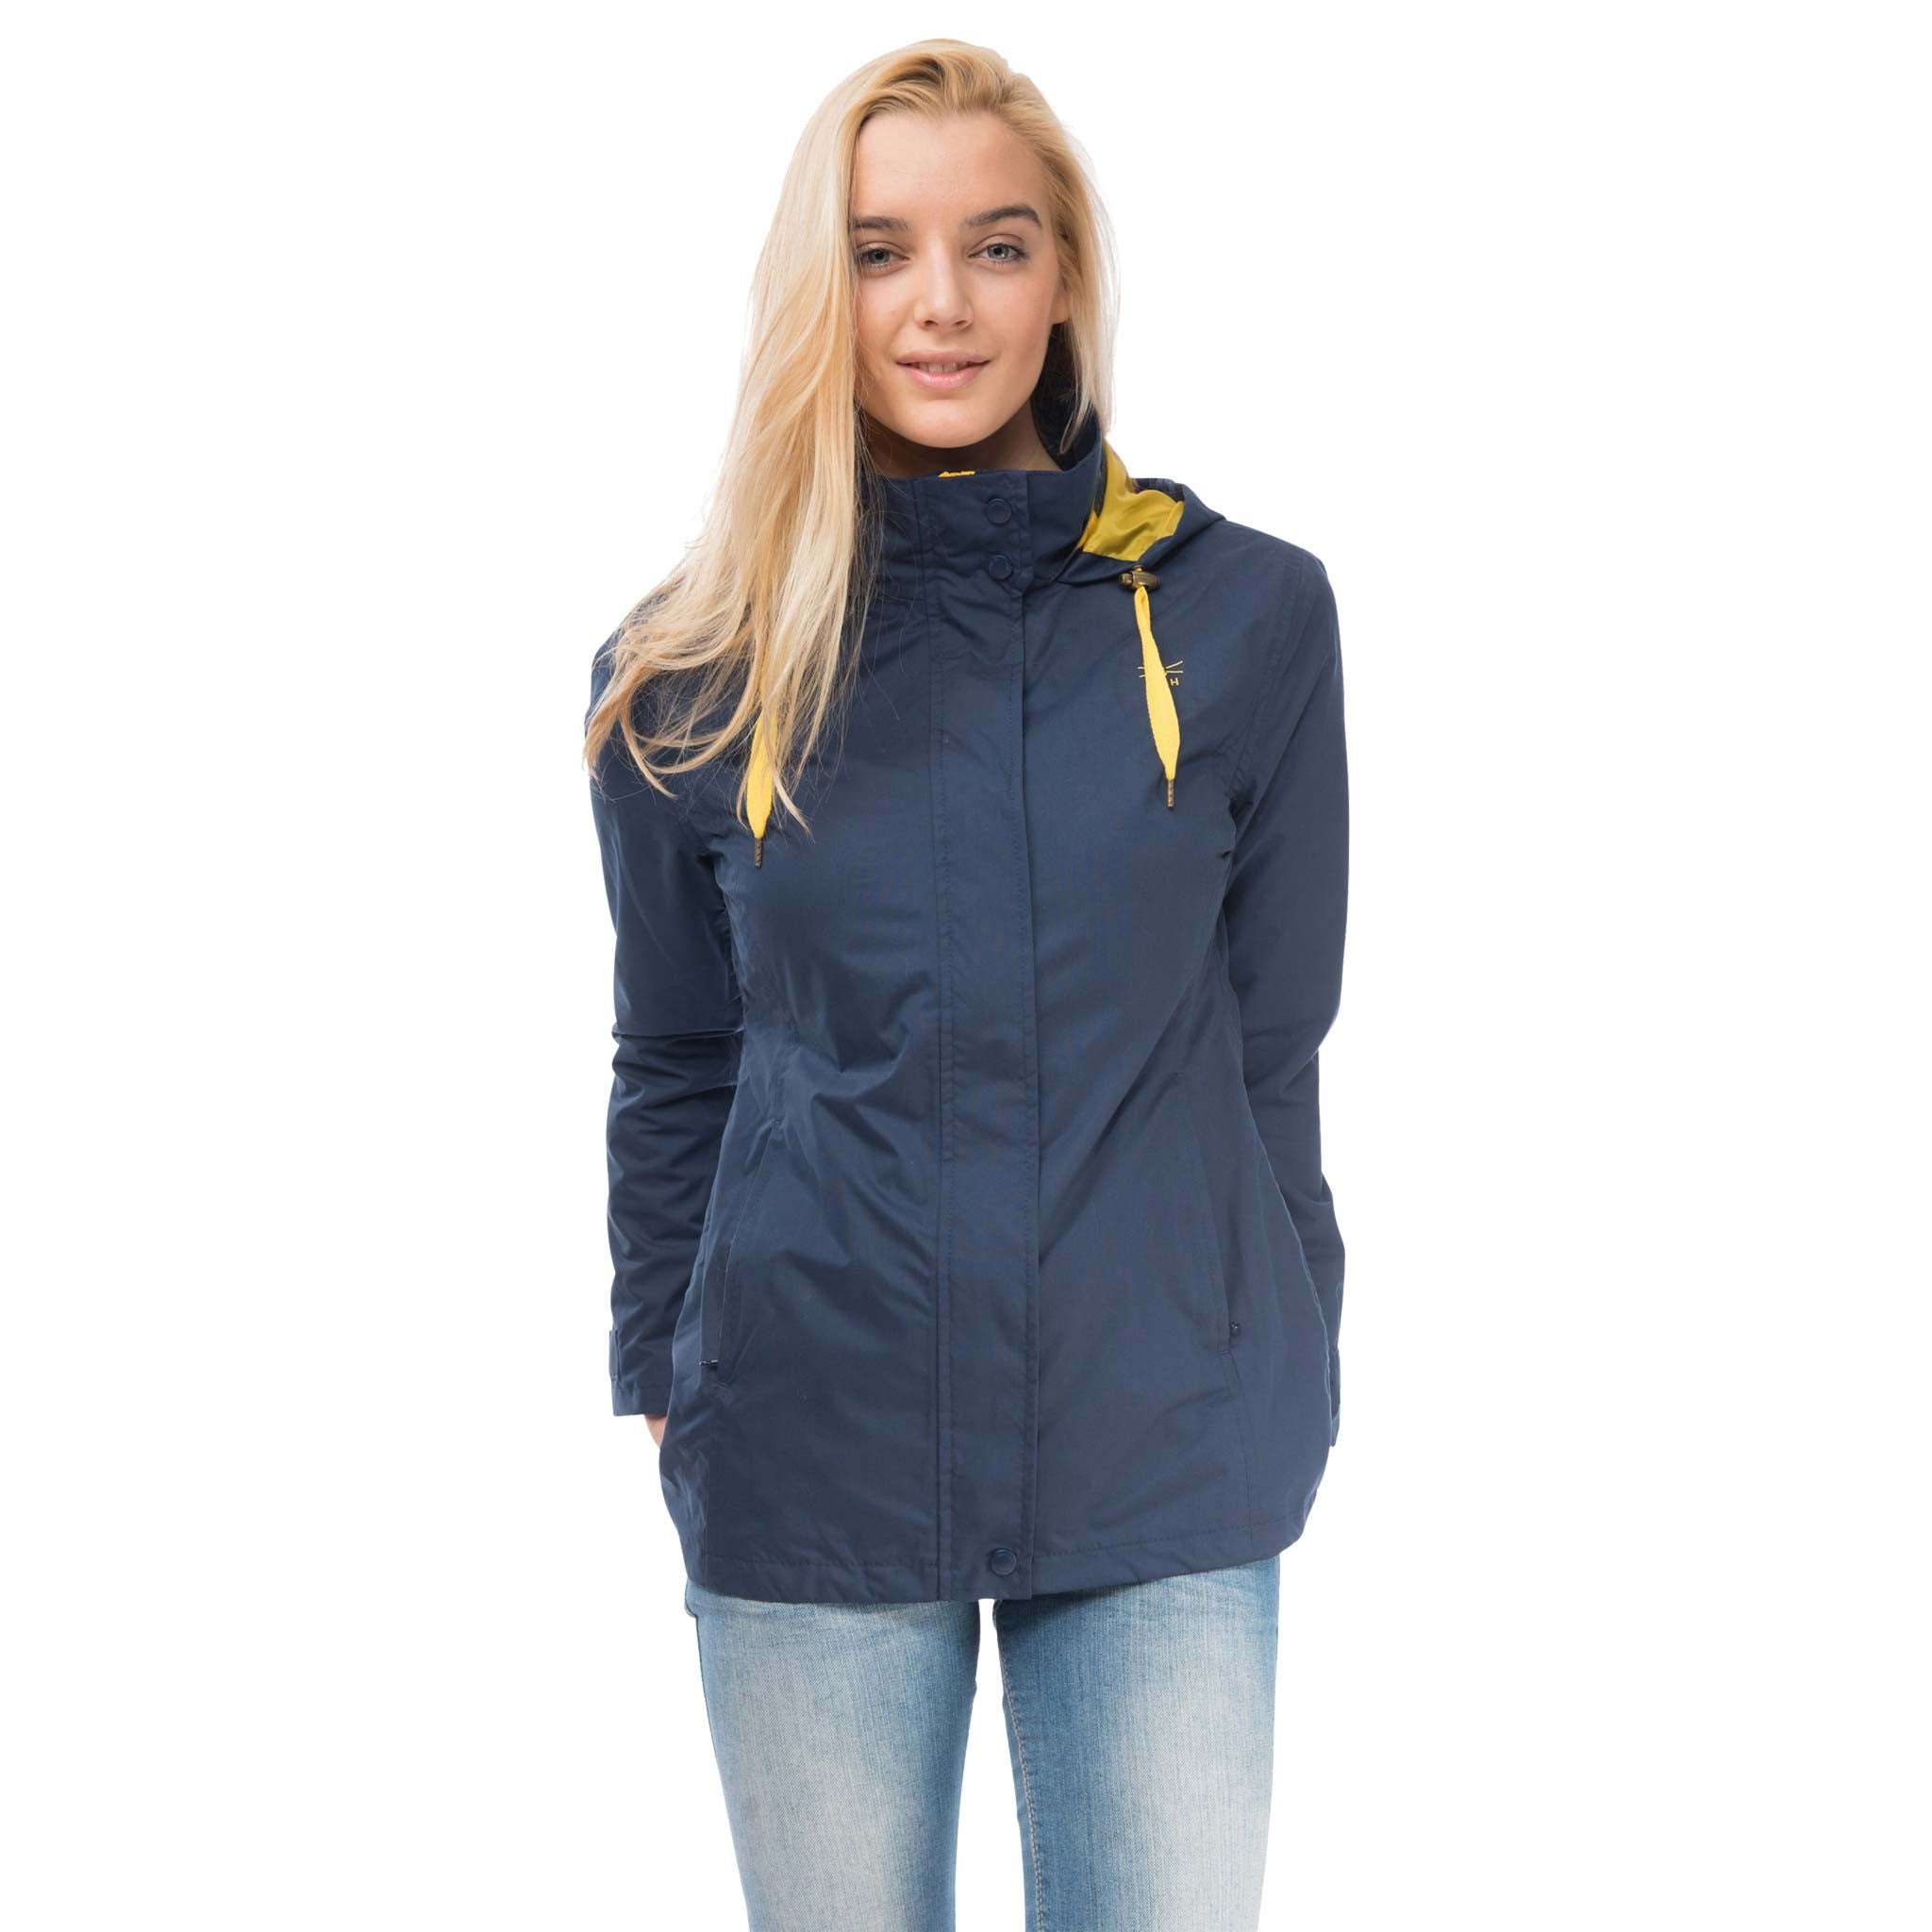 Beachcomber Waterproof Hooded Jacket in French Navy, Modelled Front View | Lighthouse